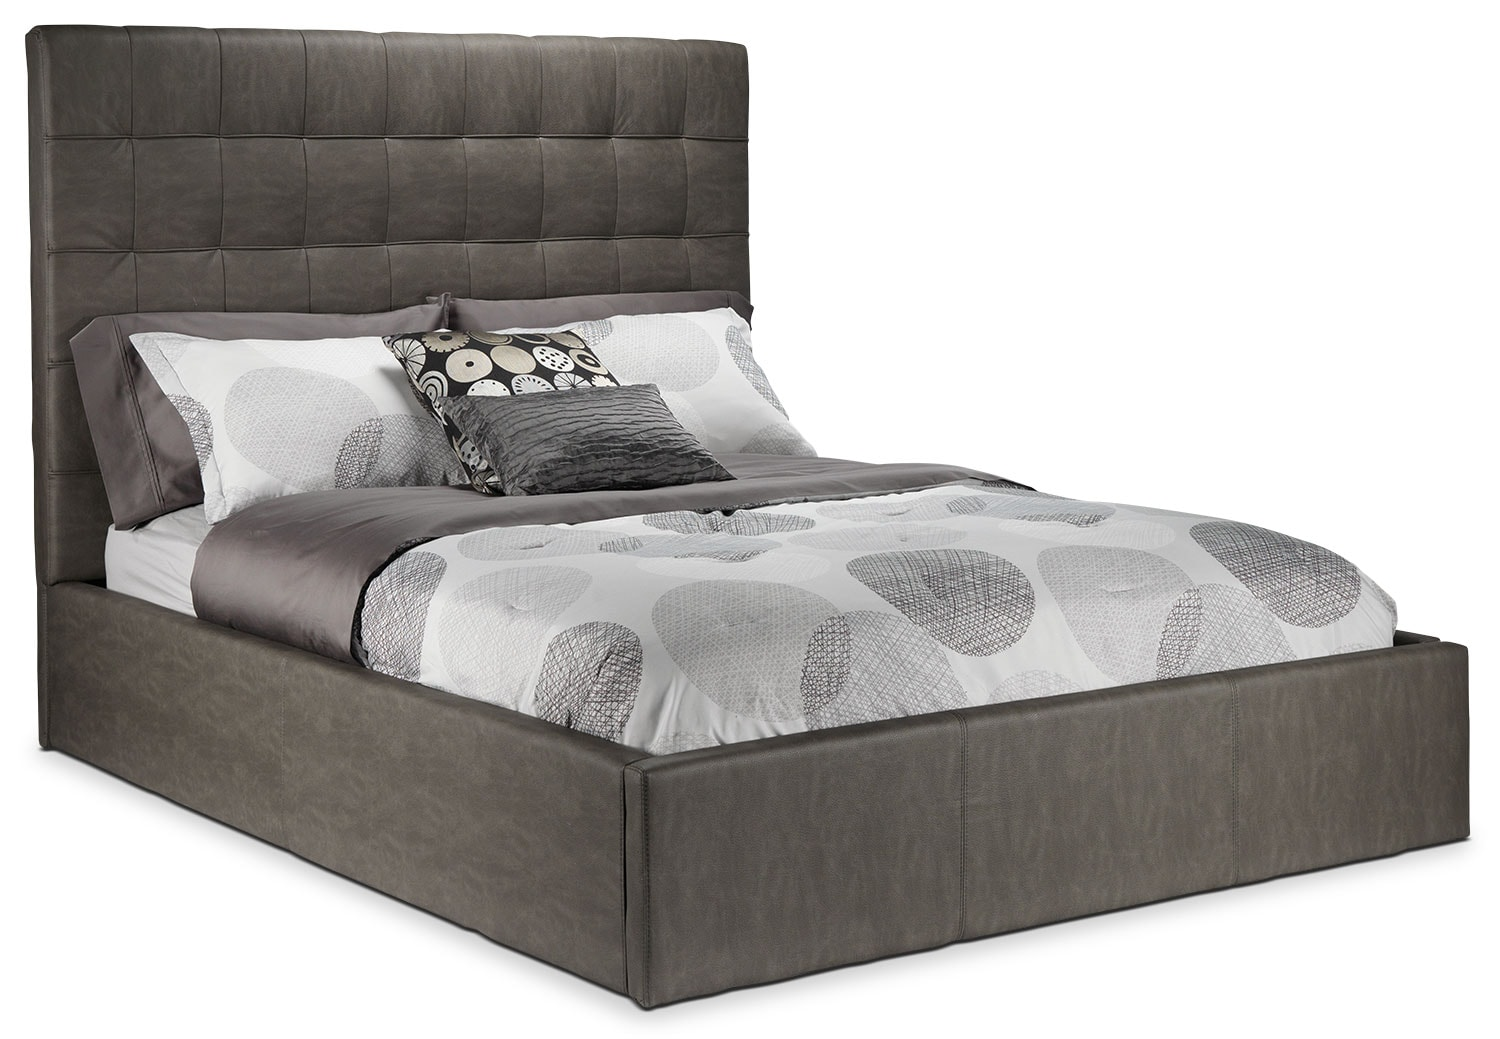 Franklin Queen Bed - Taupe